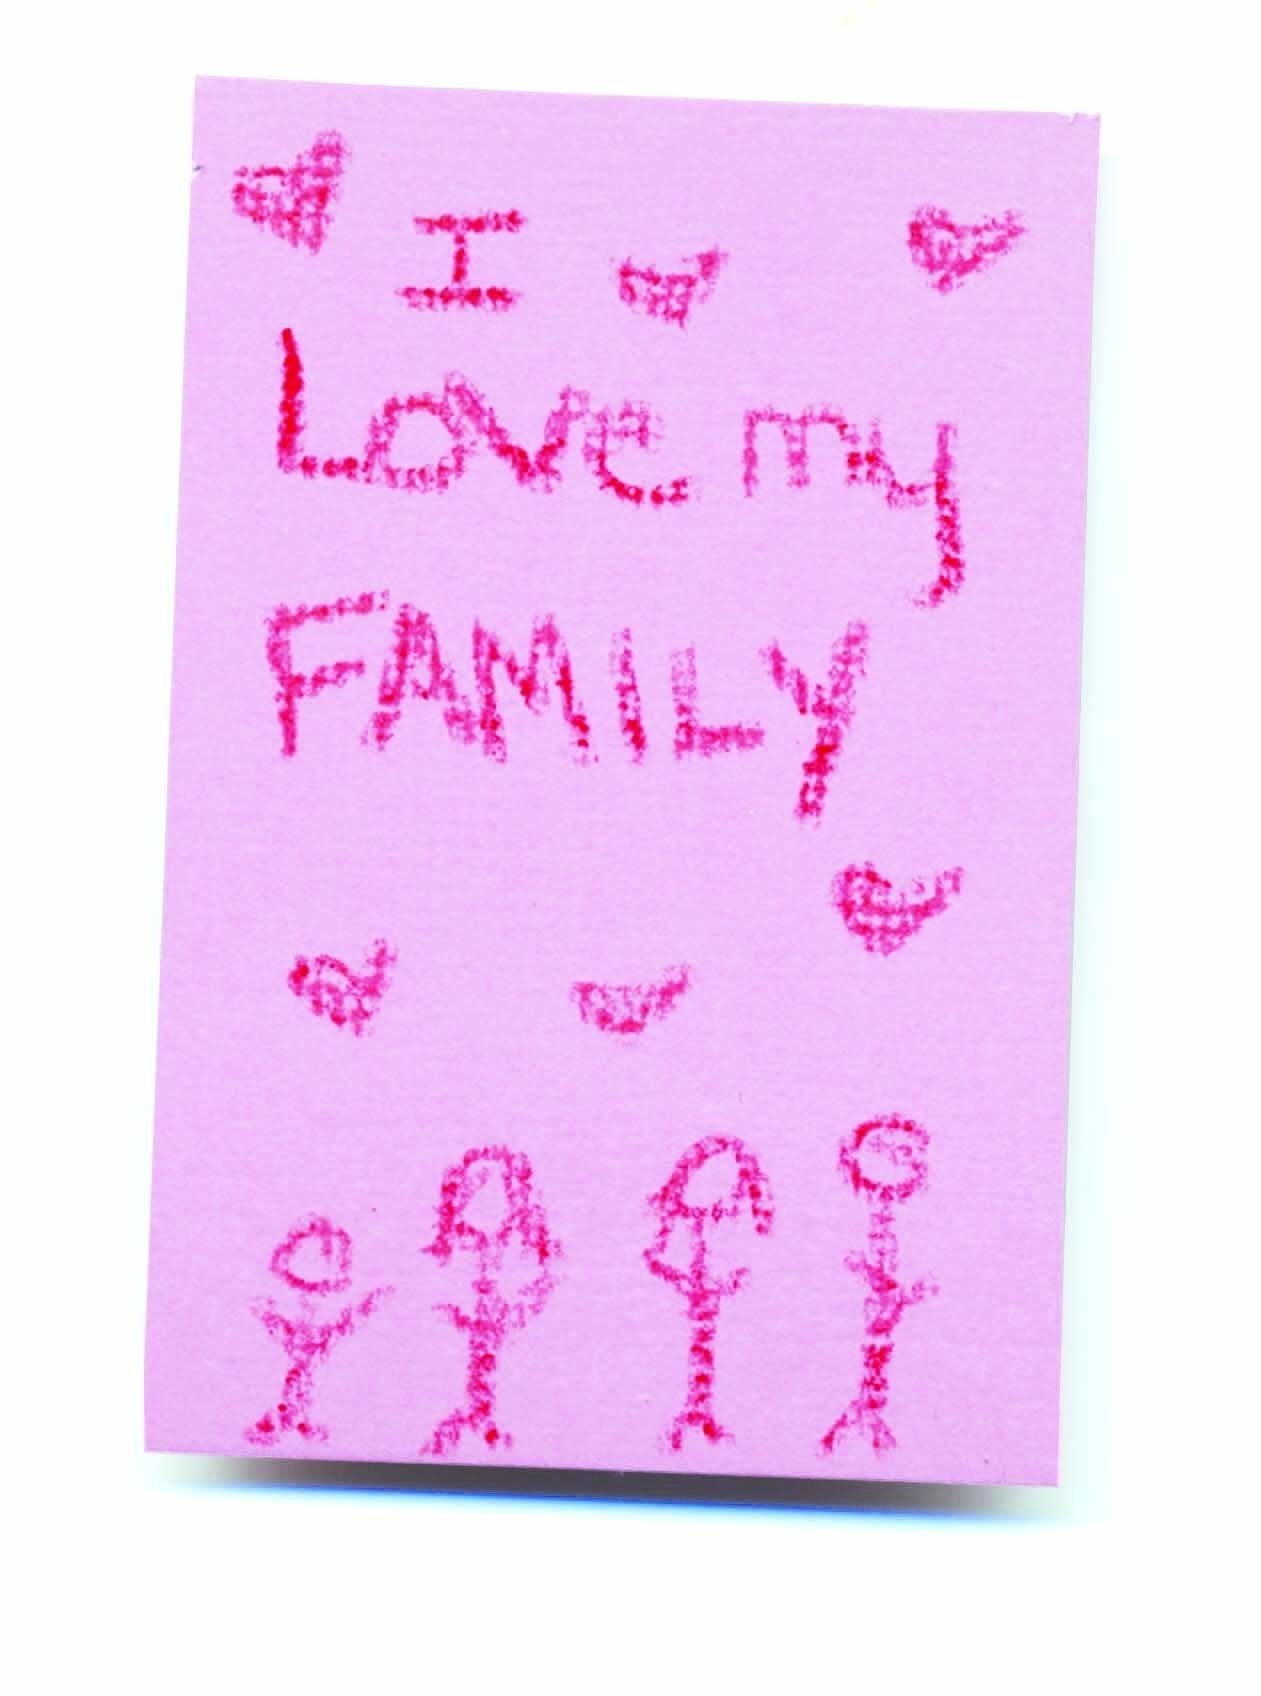 10 Best Valentines Day Ideas For Family reedsburg wi true value hardware store fun valentines day family 2020